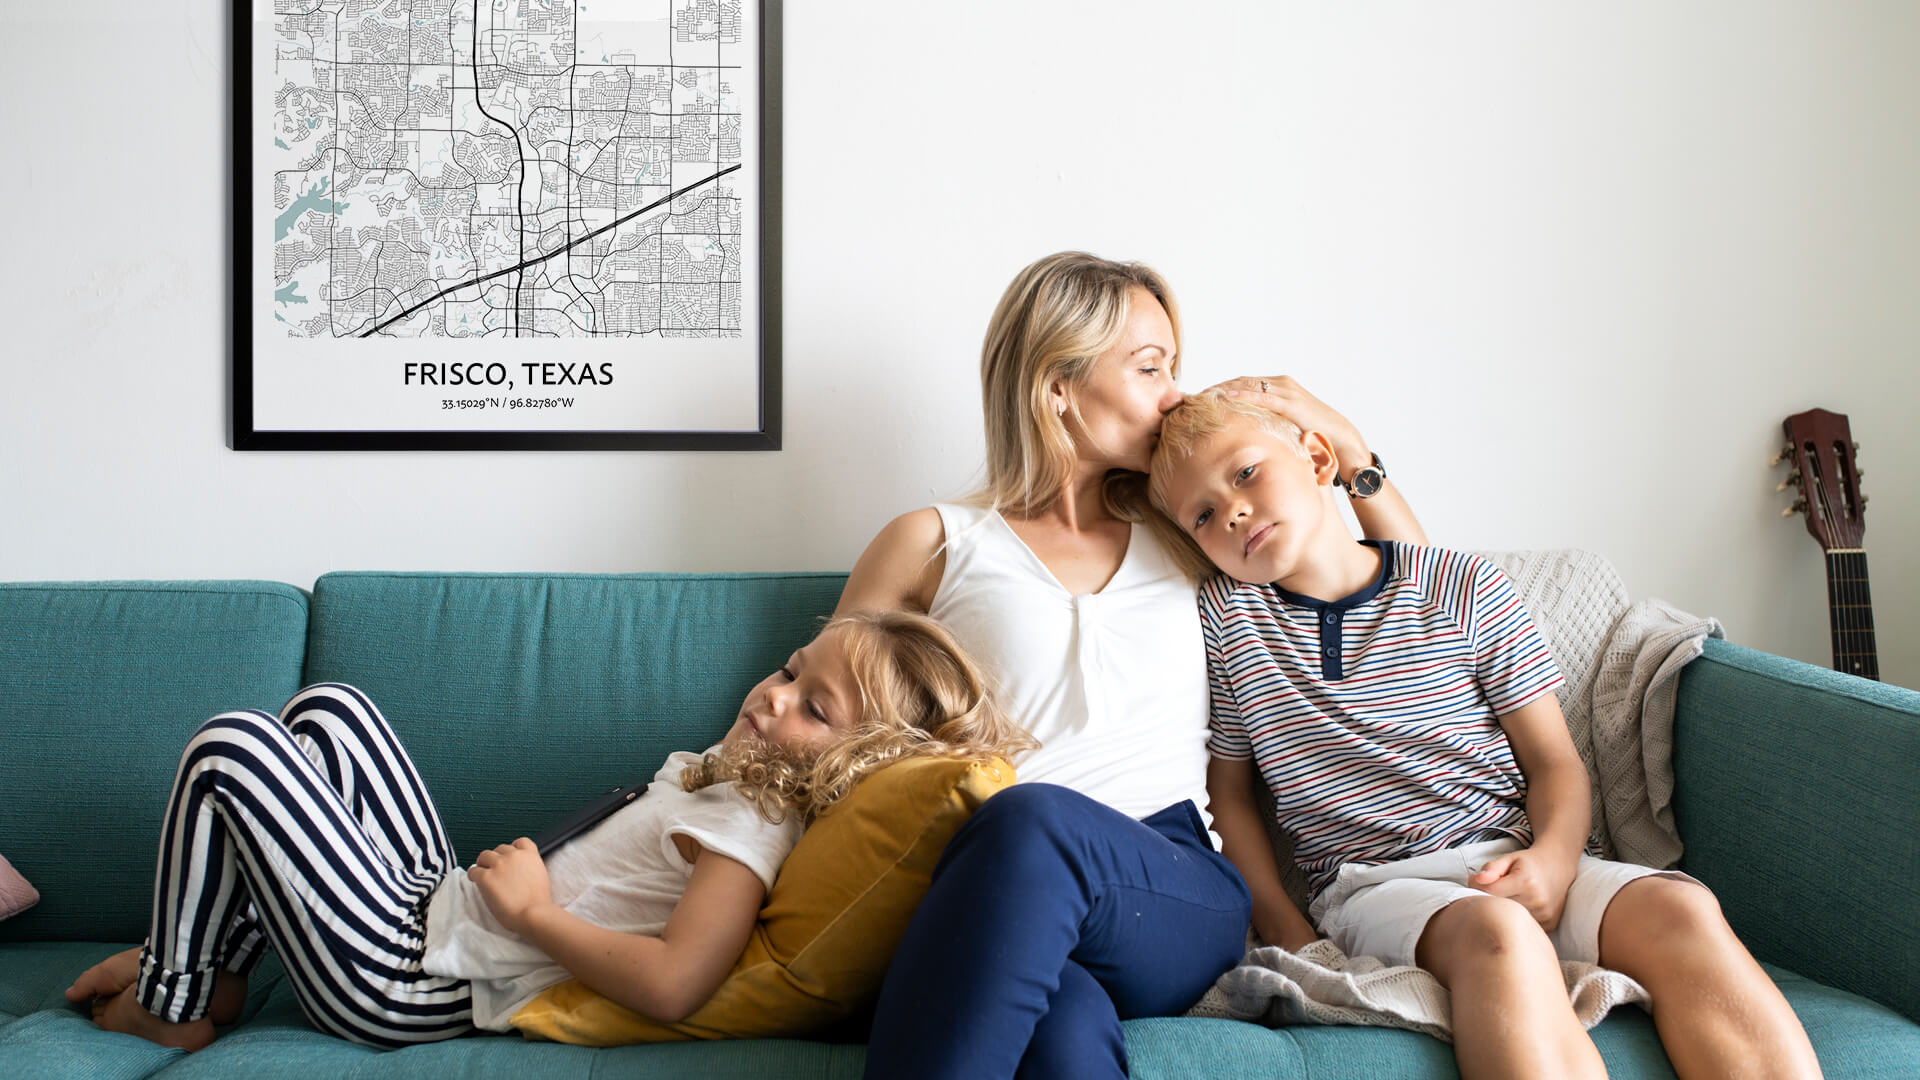 Frisco map poster